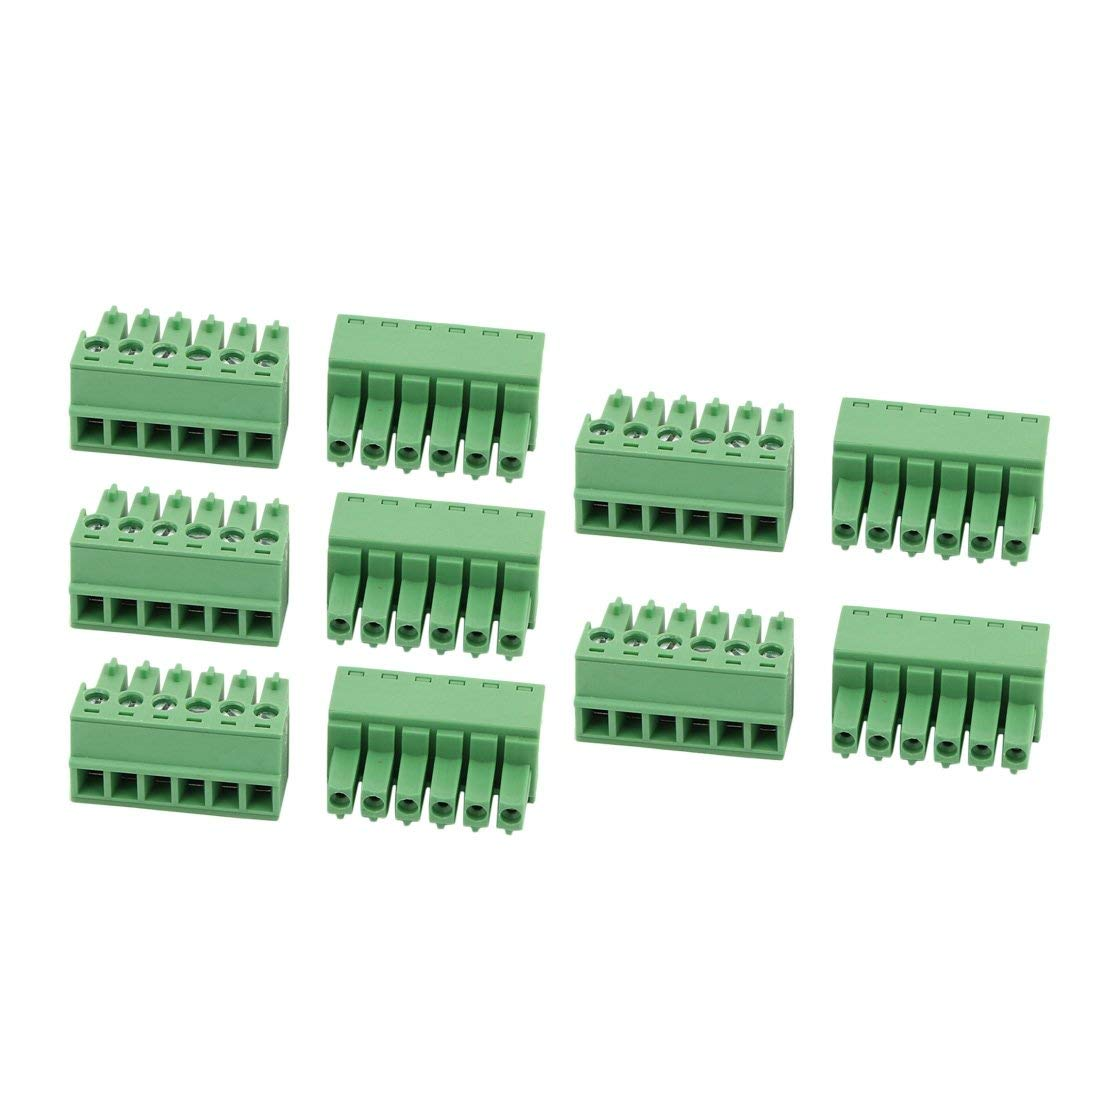 uxcell 10Pcs AC300V 8A 3.81mm Pitch 6P Terminal Block Wire Connection for PCB Mounting